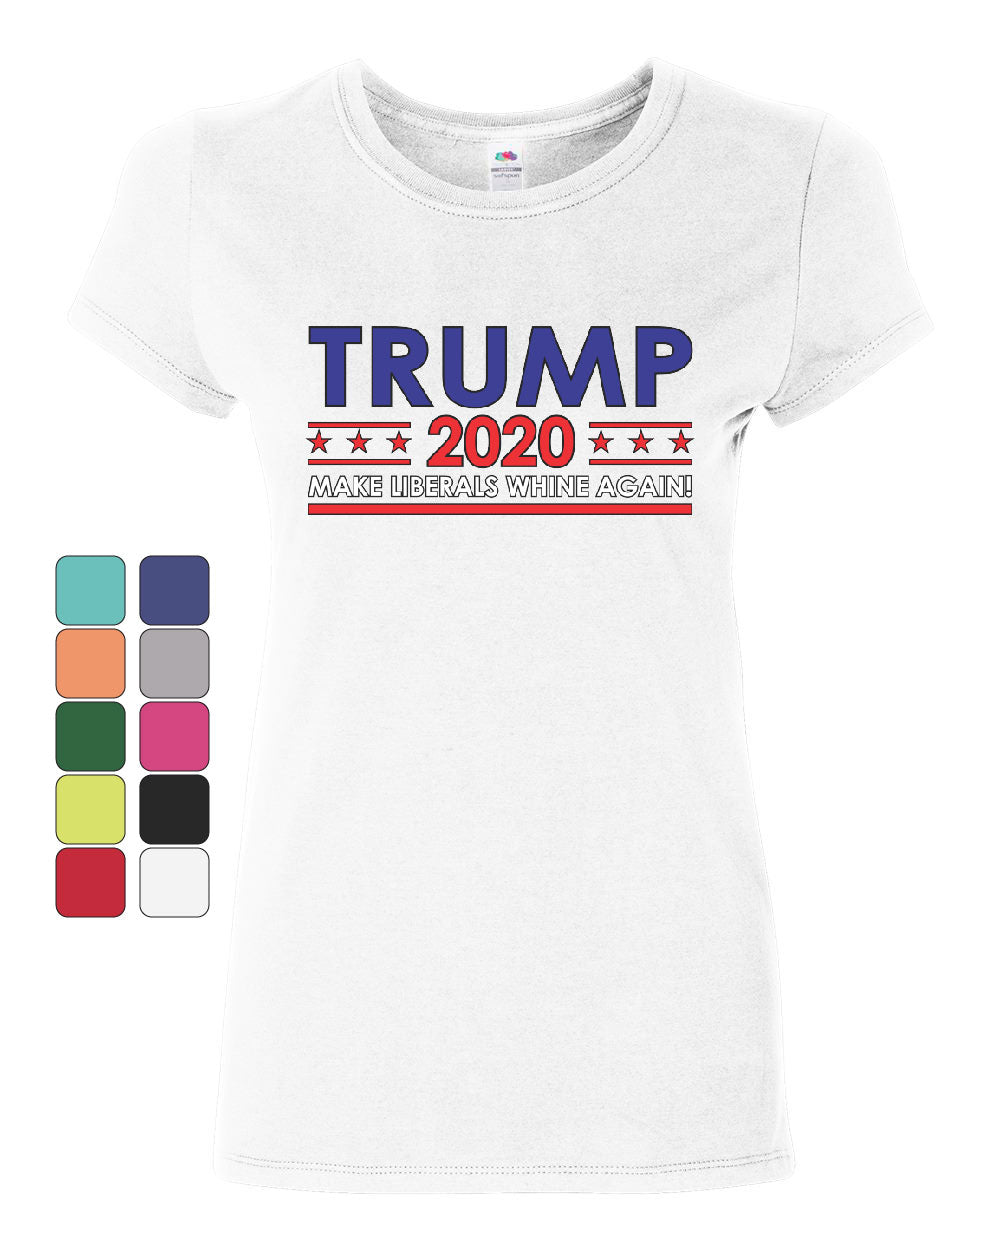 8934aed560 TRUMP 2020 Keep America Great Women's T-Shirt Make Liberals Whine Again  Shirt